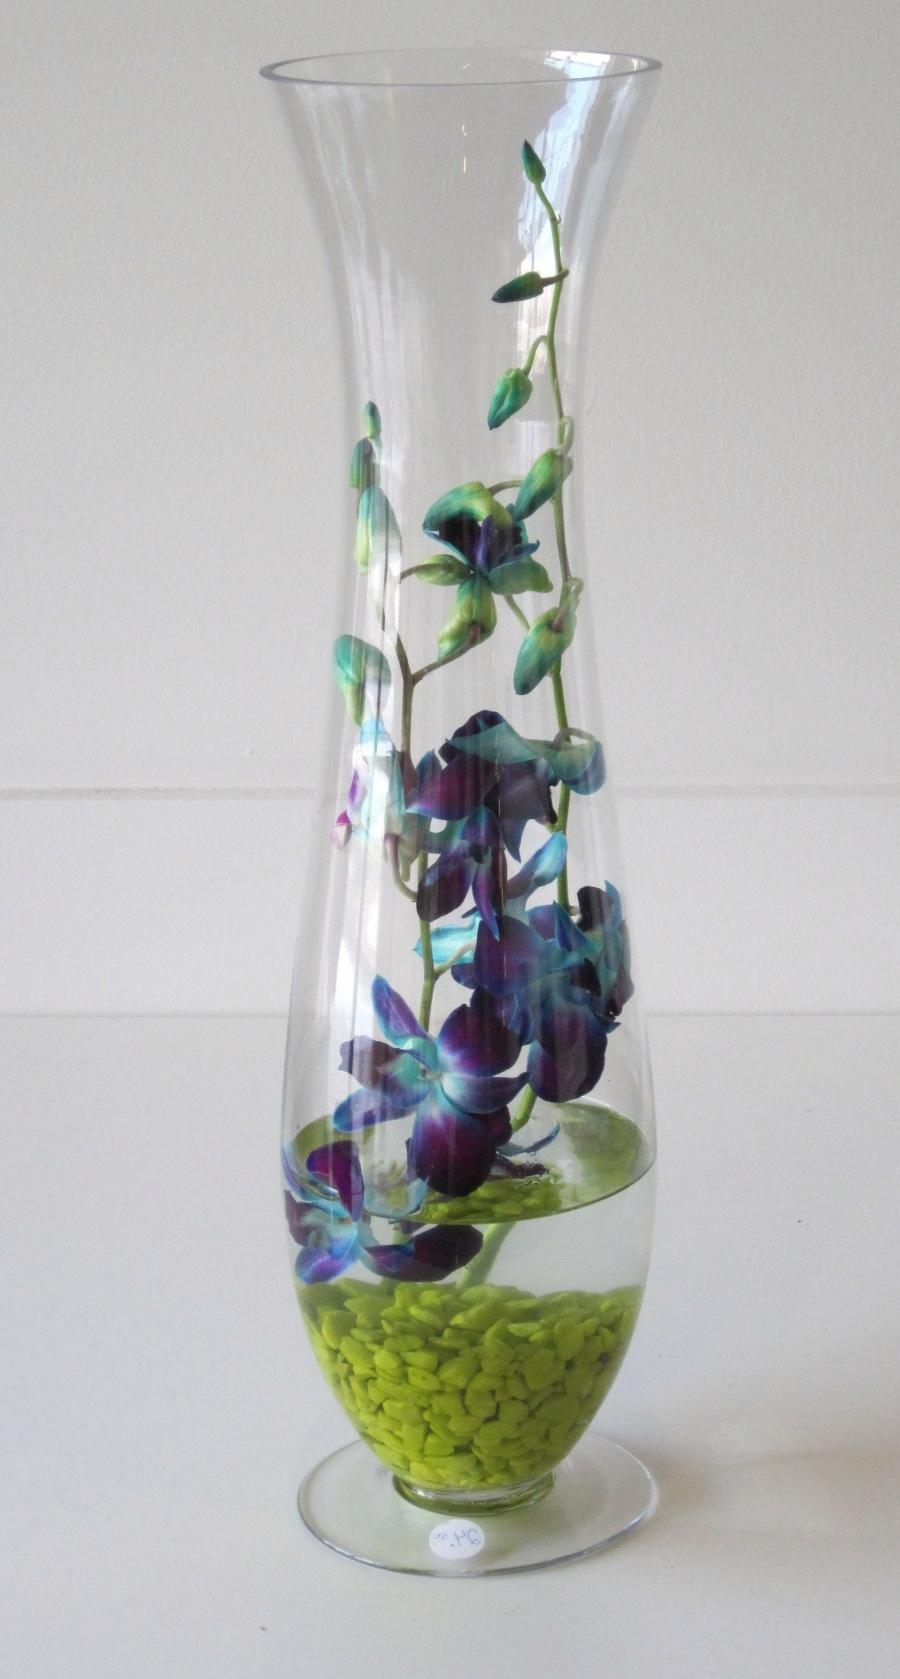 Orchid In Glass Vase Photo